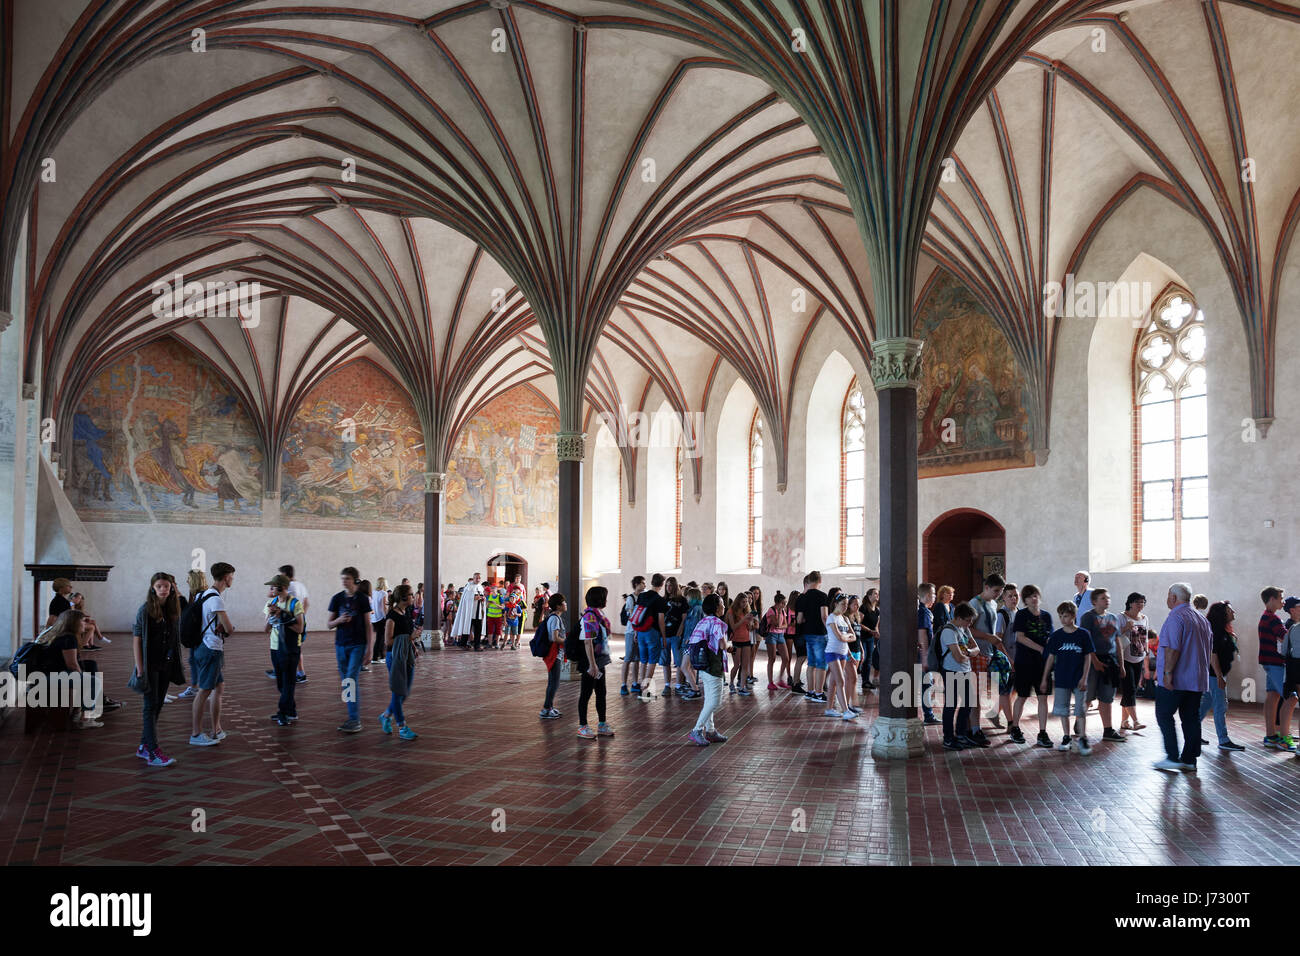 Poland Malbork Castle Interior The Grand Refectory With Gothic Rib Fan Vault In Middle Group Of School Children On Sightseeing Tour